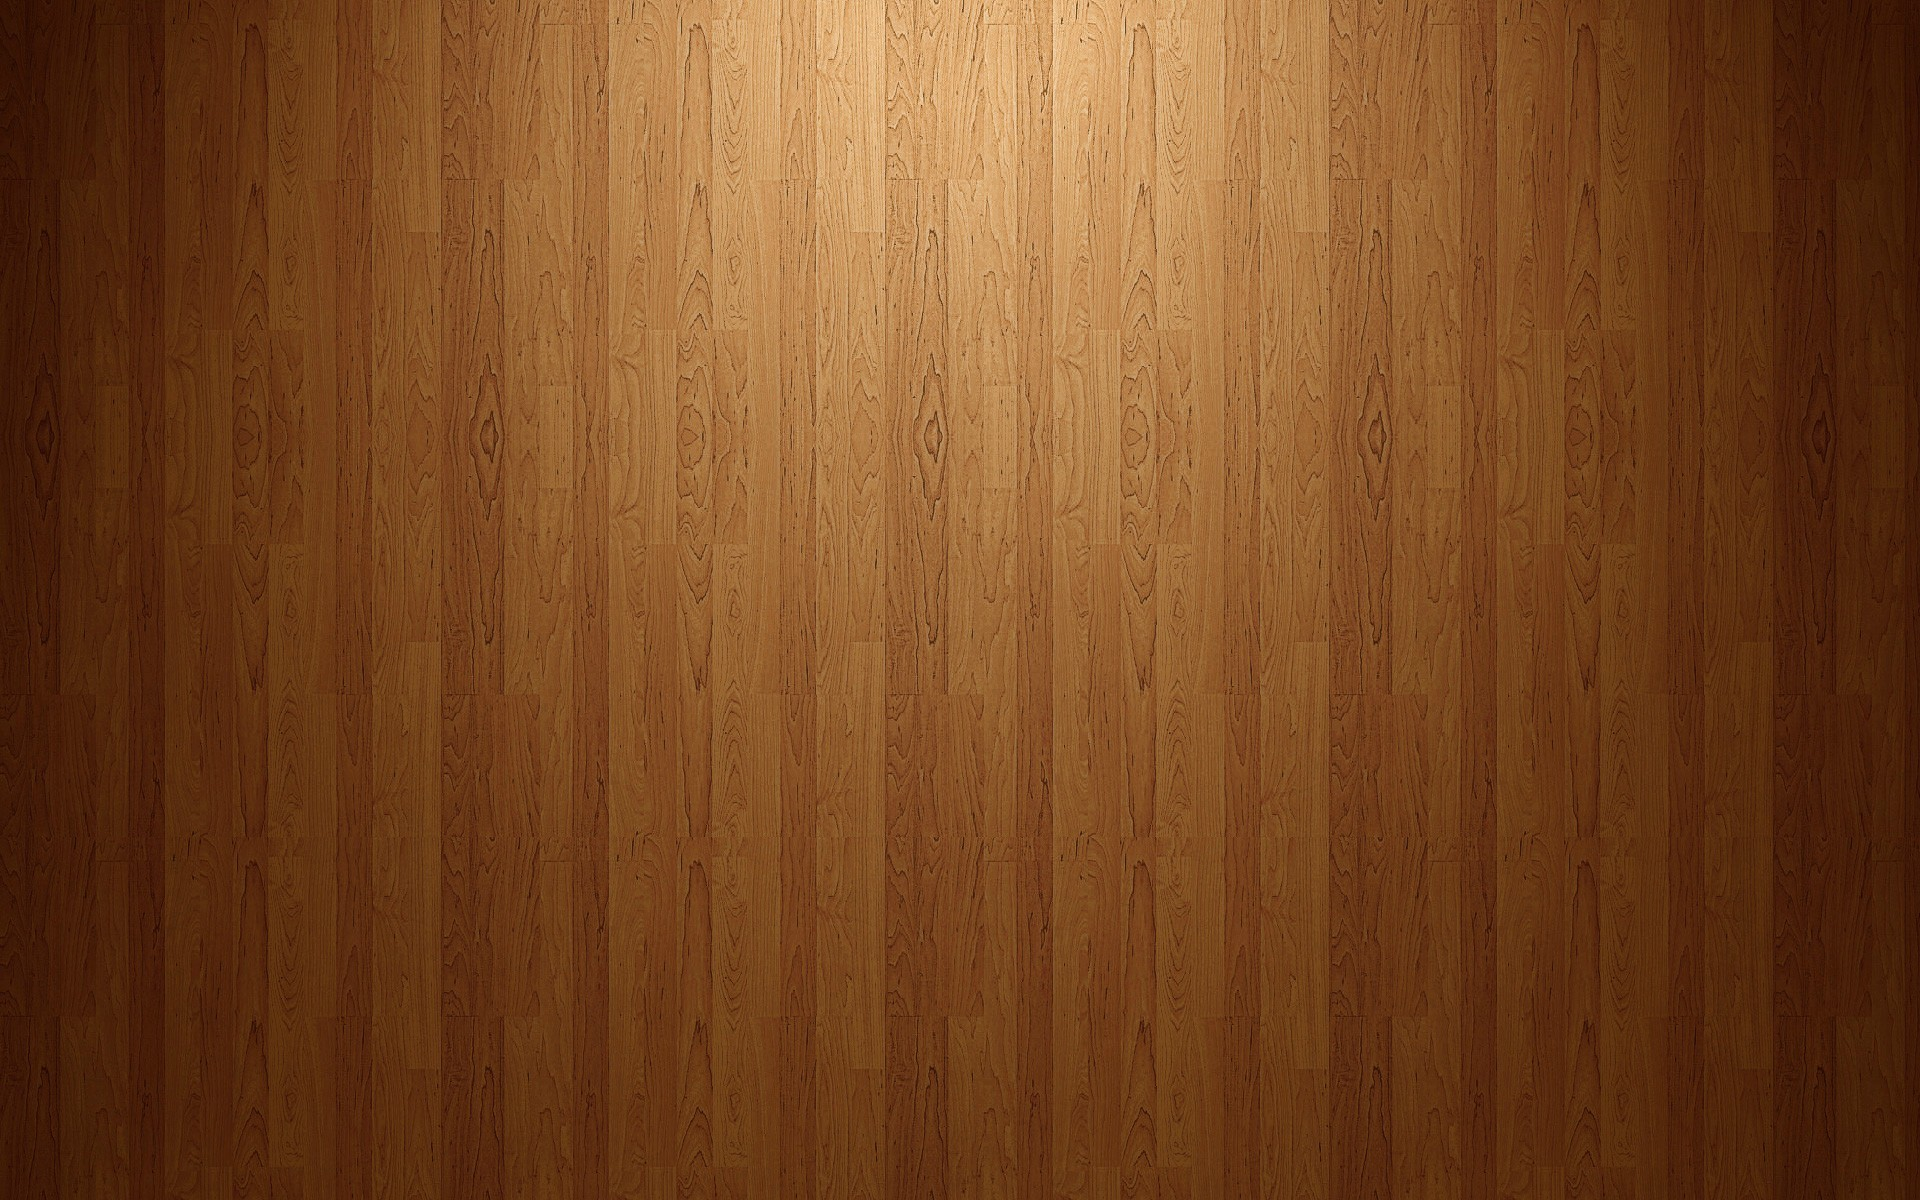 Wood table background hd - Wooden Background